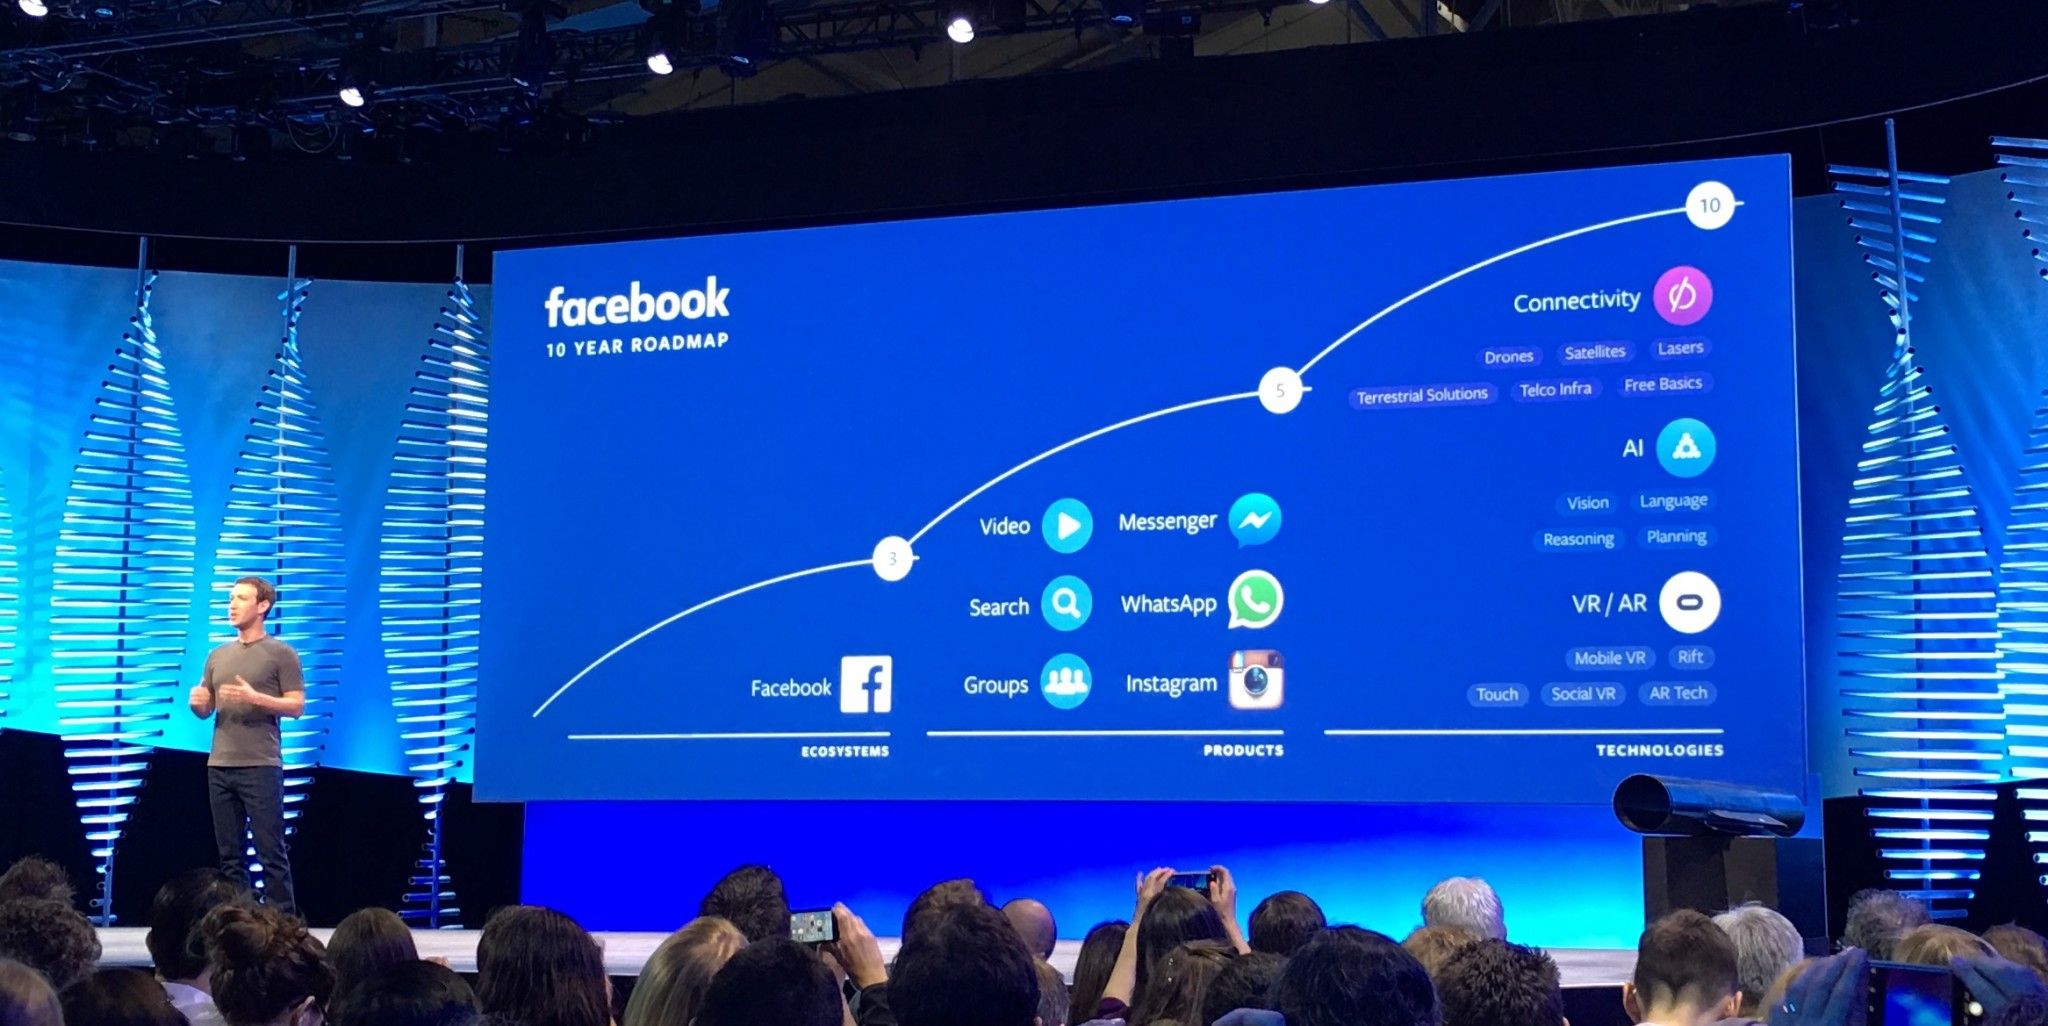 Facebook It: Facebook's 10-year Roadmap Is Basically Lasers, Bots And VR